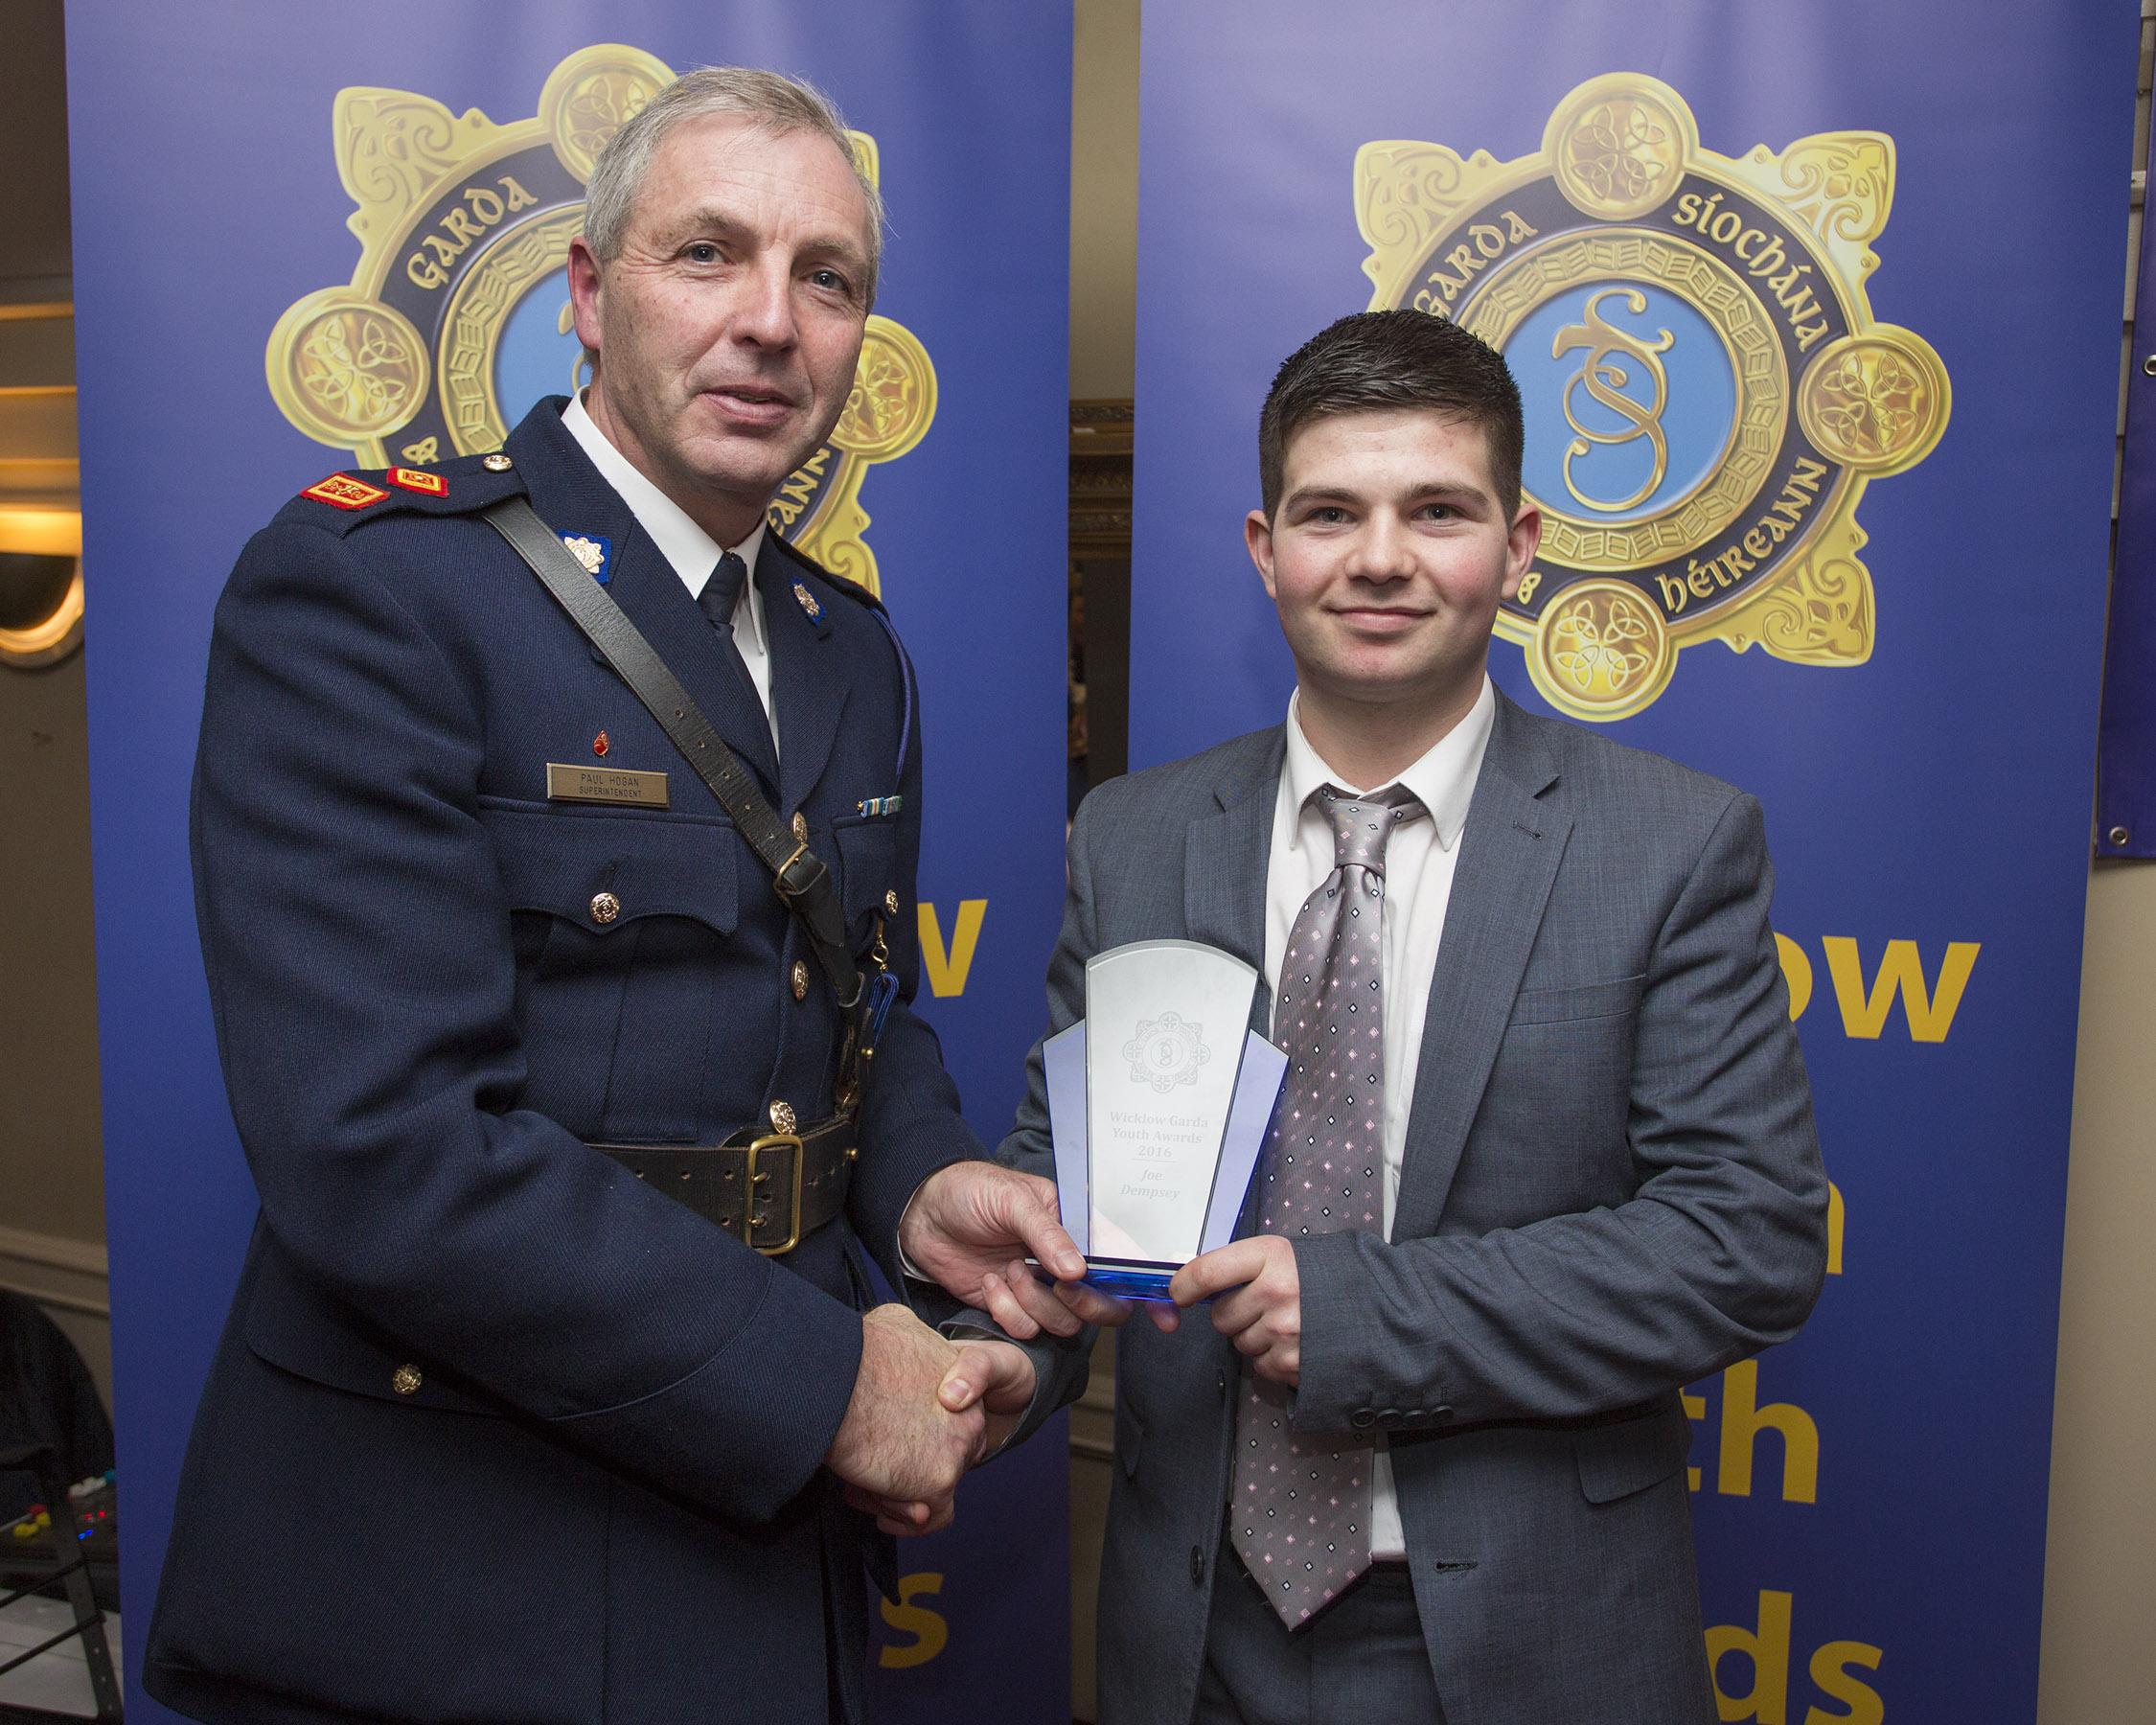 Joe Dempsey from Baltinglass recieves his youth award from Superintendant Paul Hogan at the 2nd Annual Wicklow Garda Youth Awards which was held in the Grand Hotel, Wicklow Town.